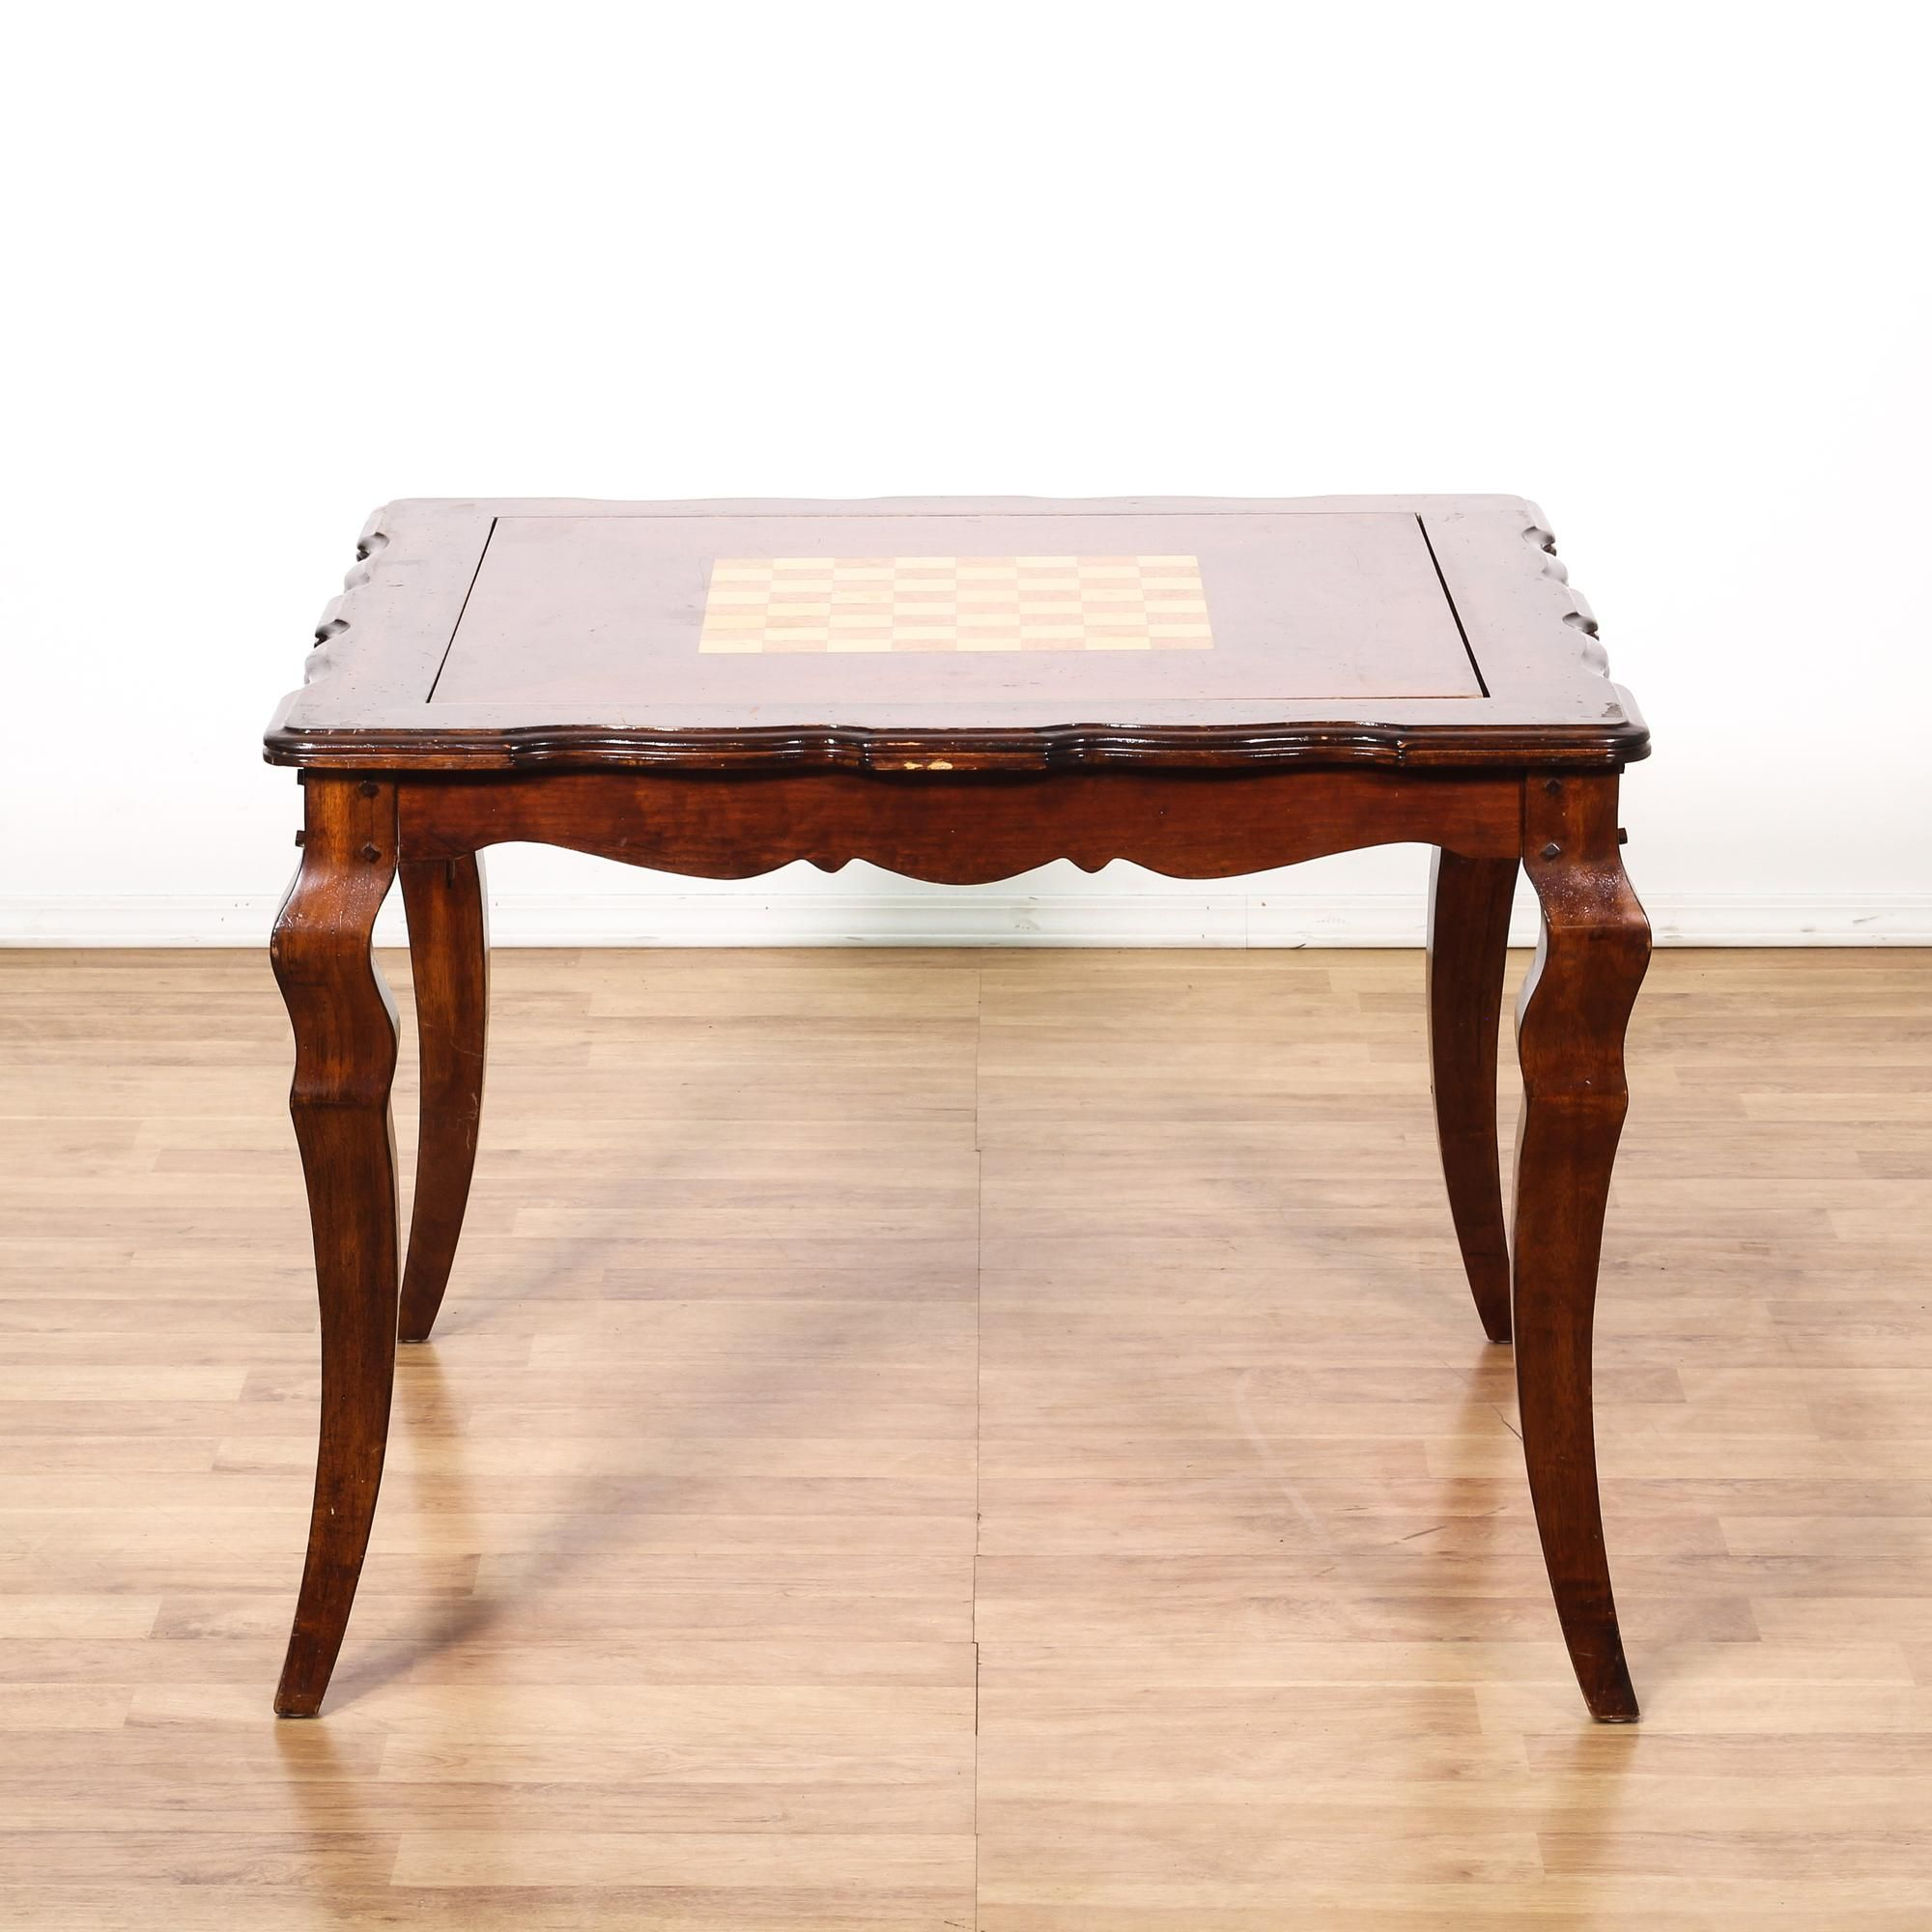 Beau This French Provincial Game Table Is Featured In A Solid Wood With A Glossy  Cherry Finish